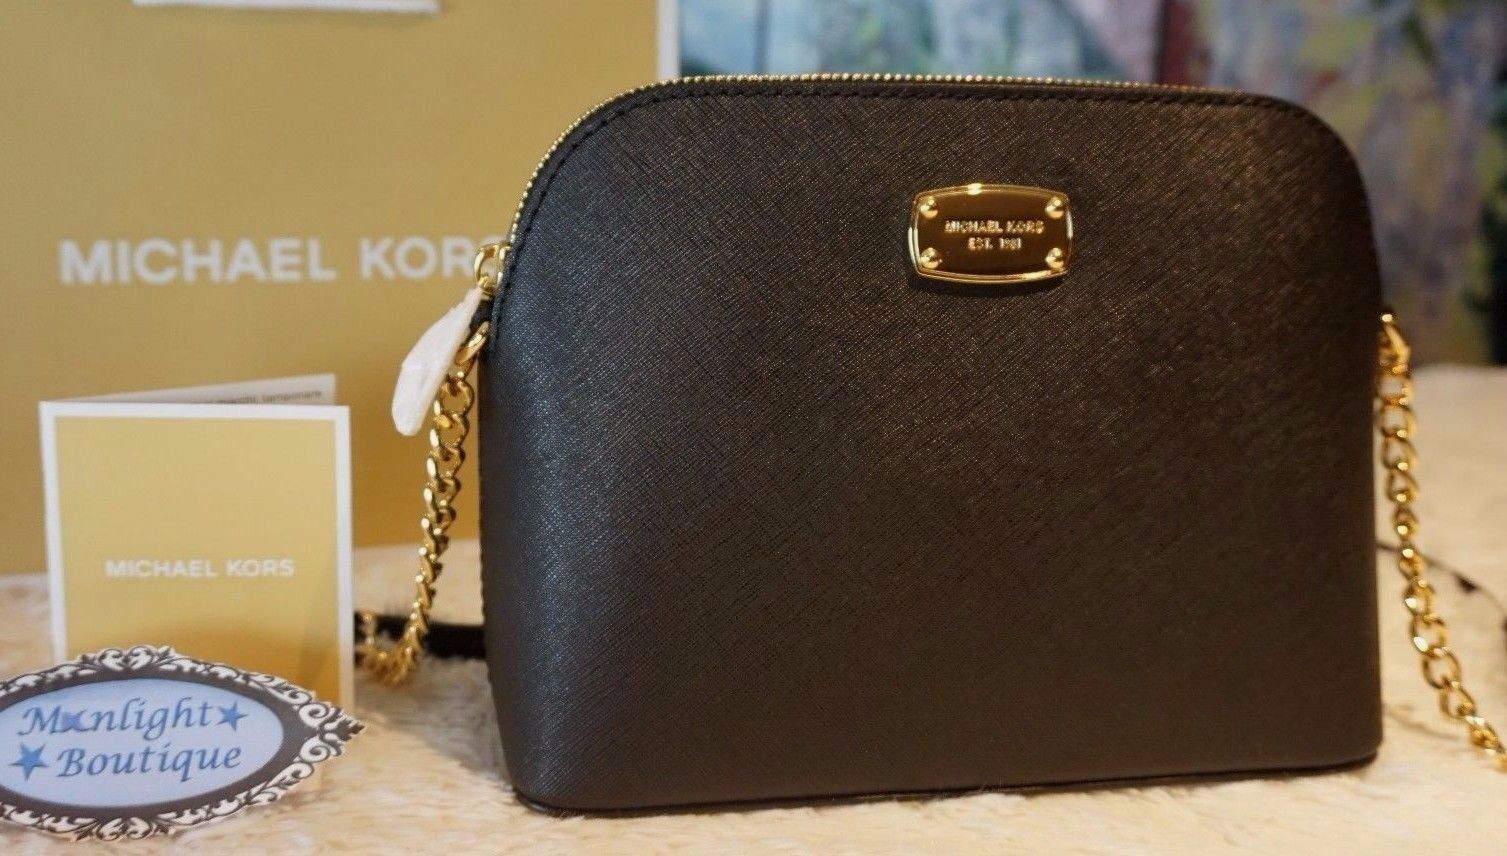 Michael Kors - NWT MICHAEL KORS CINDY LARGE Dome CROSSBODY Bag Saffiano Leather In BLACK $228